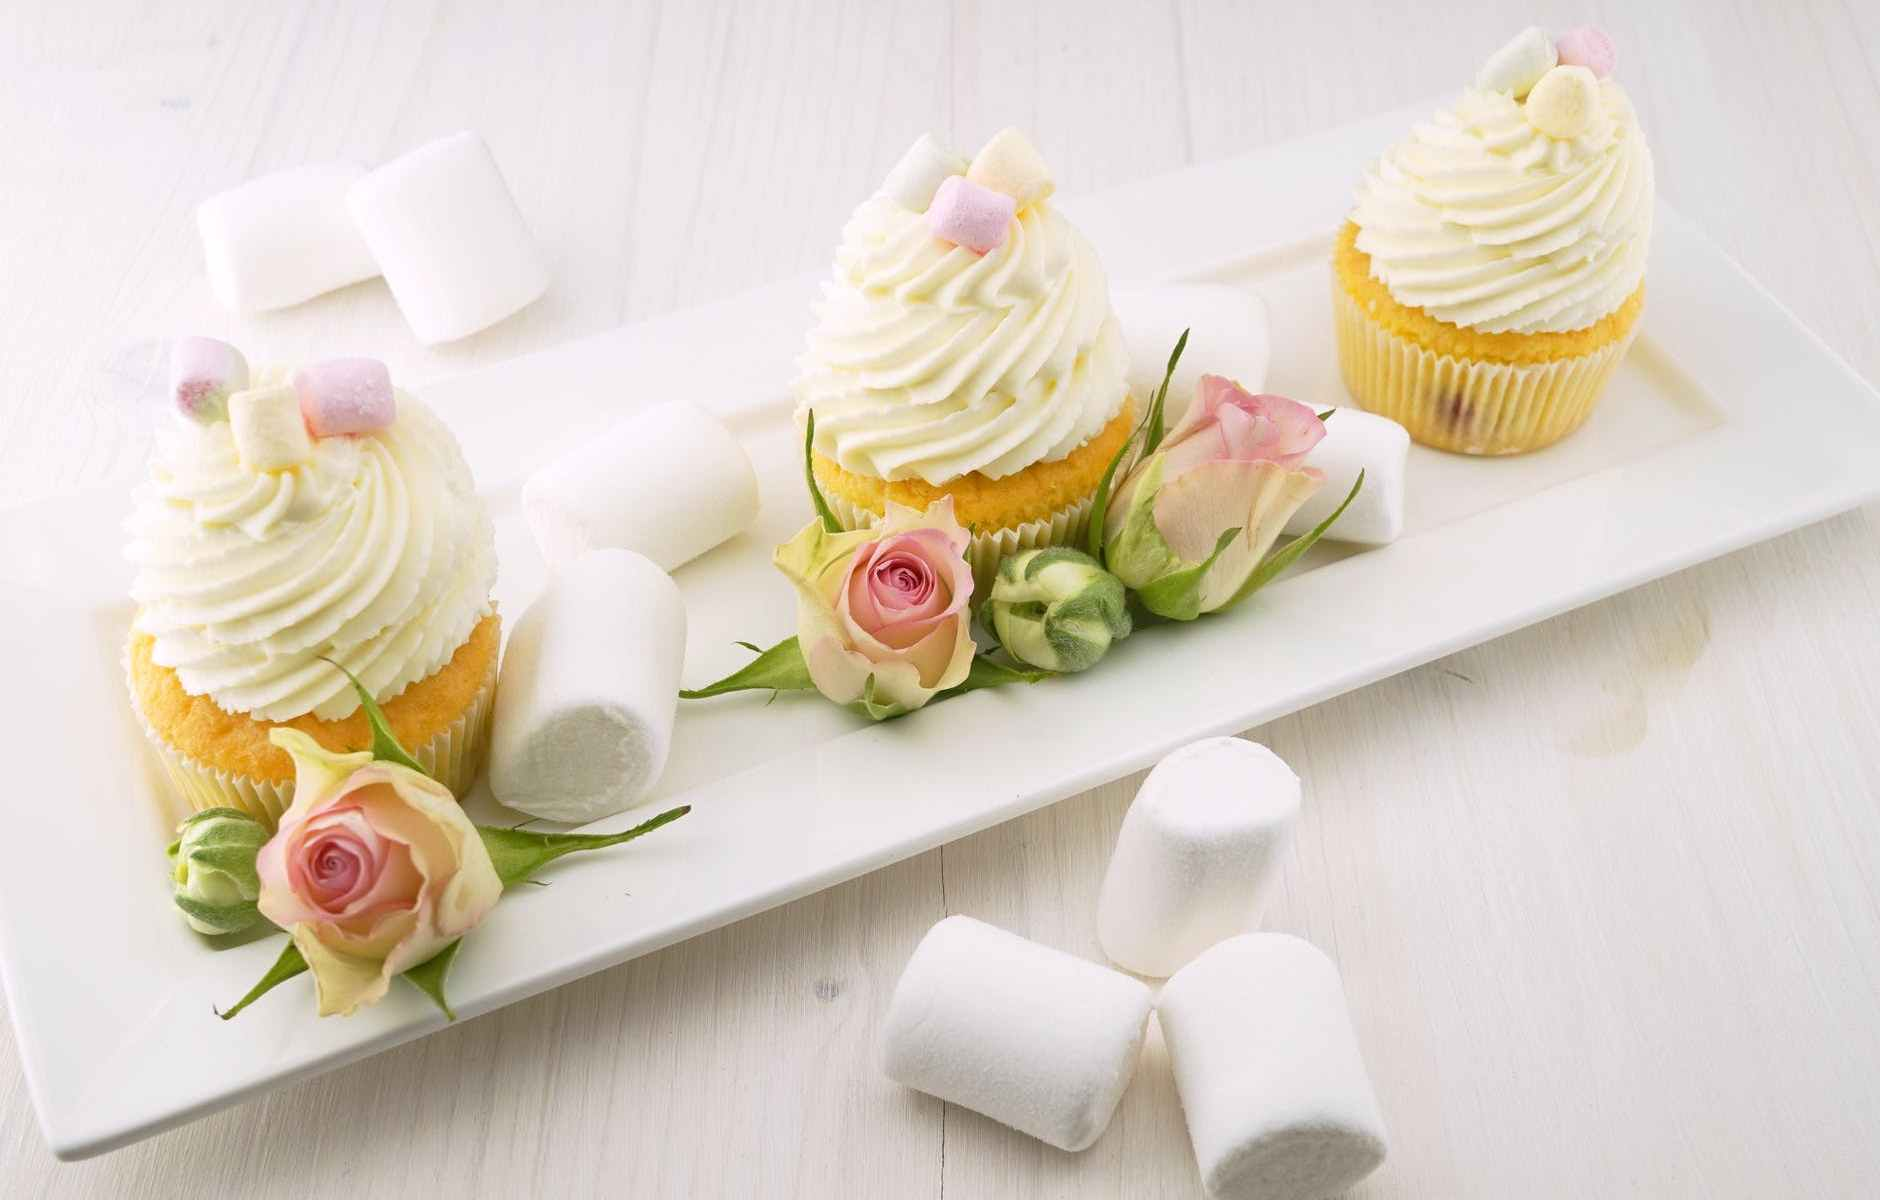 baked cupcakes with marshmallows